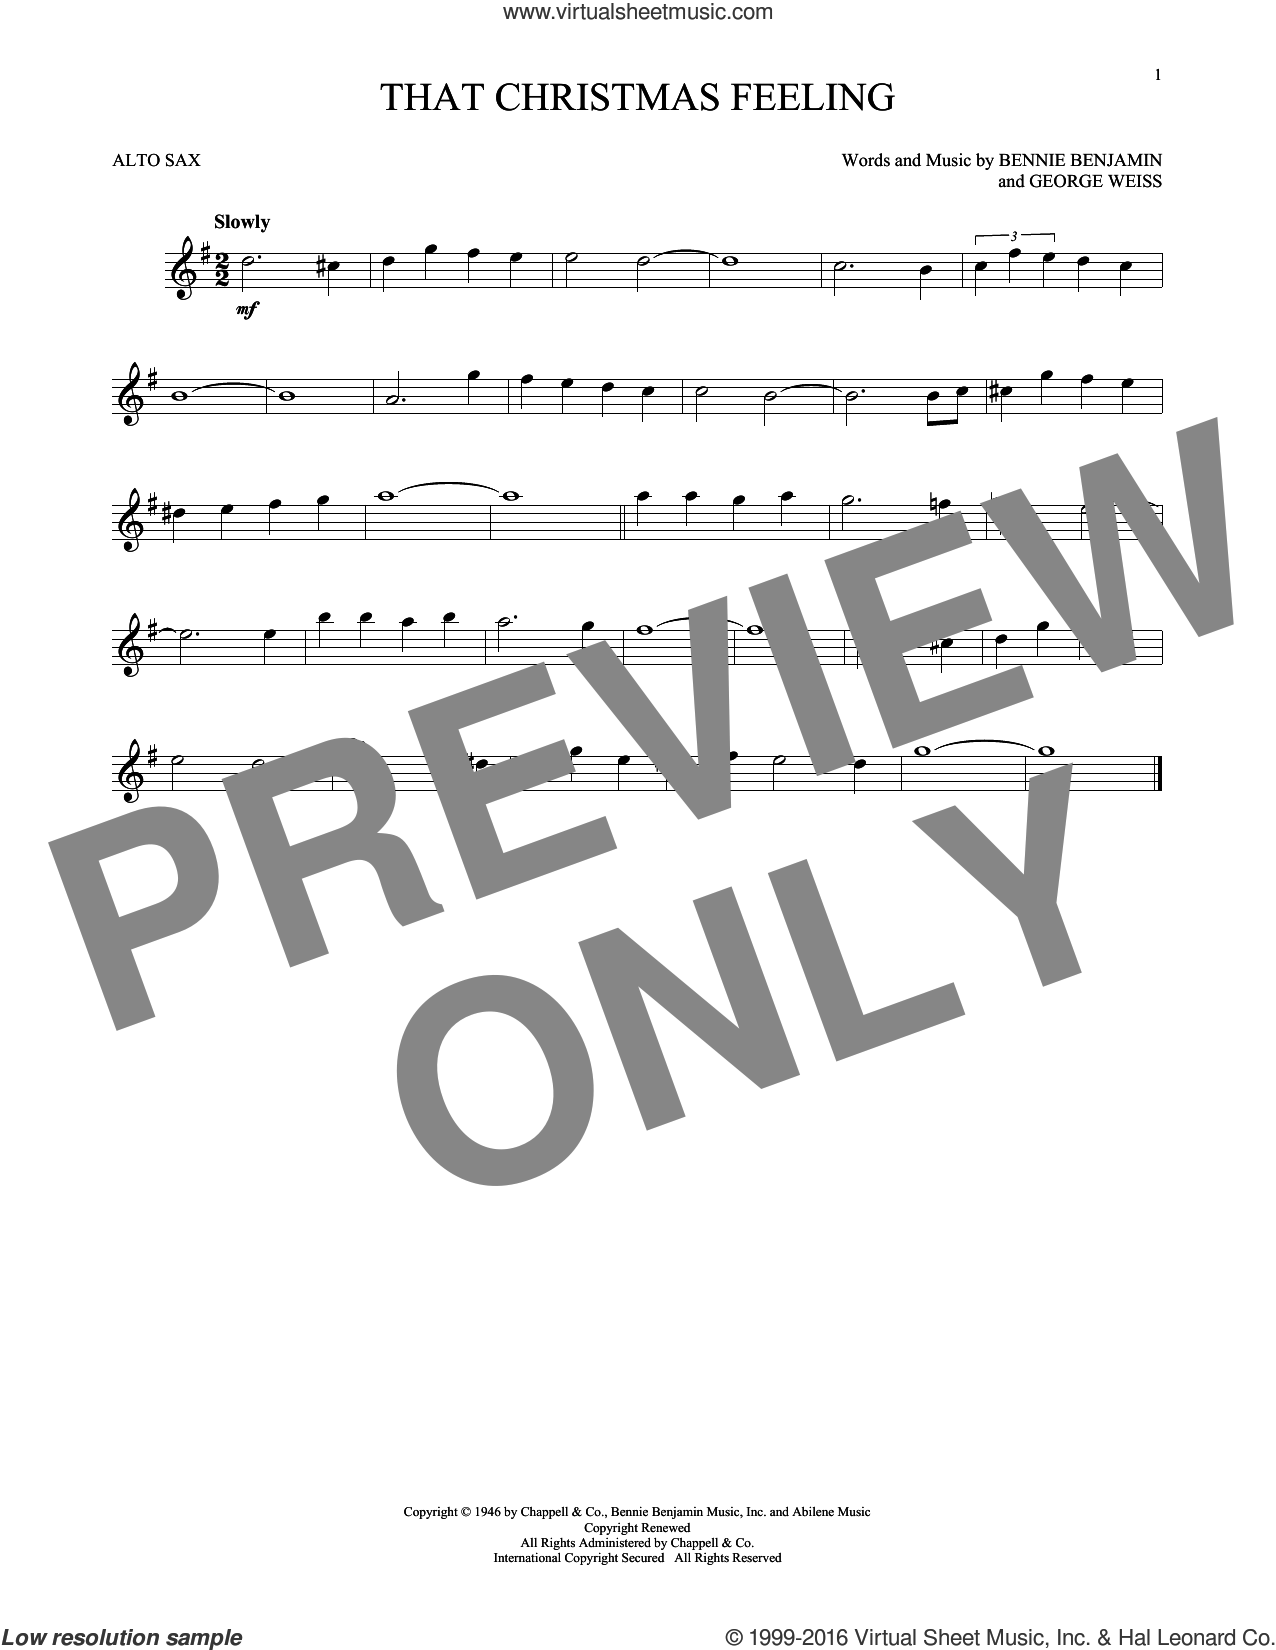 That Christmas Feeling sheet music for alto saxophone solo by George David Weiss, Bennie Benjamin and Bennie Benjamin & George Weiss, intermediate skill level